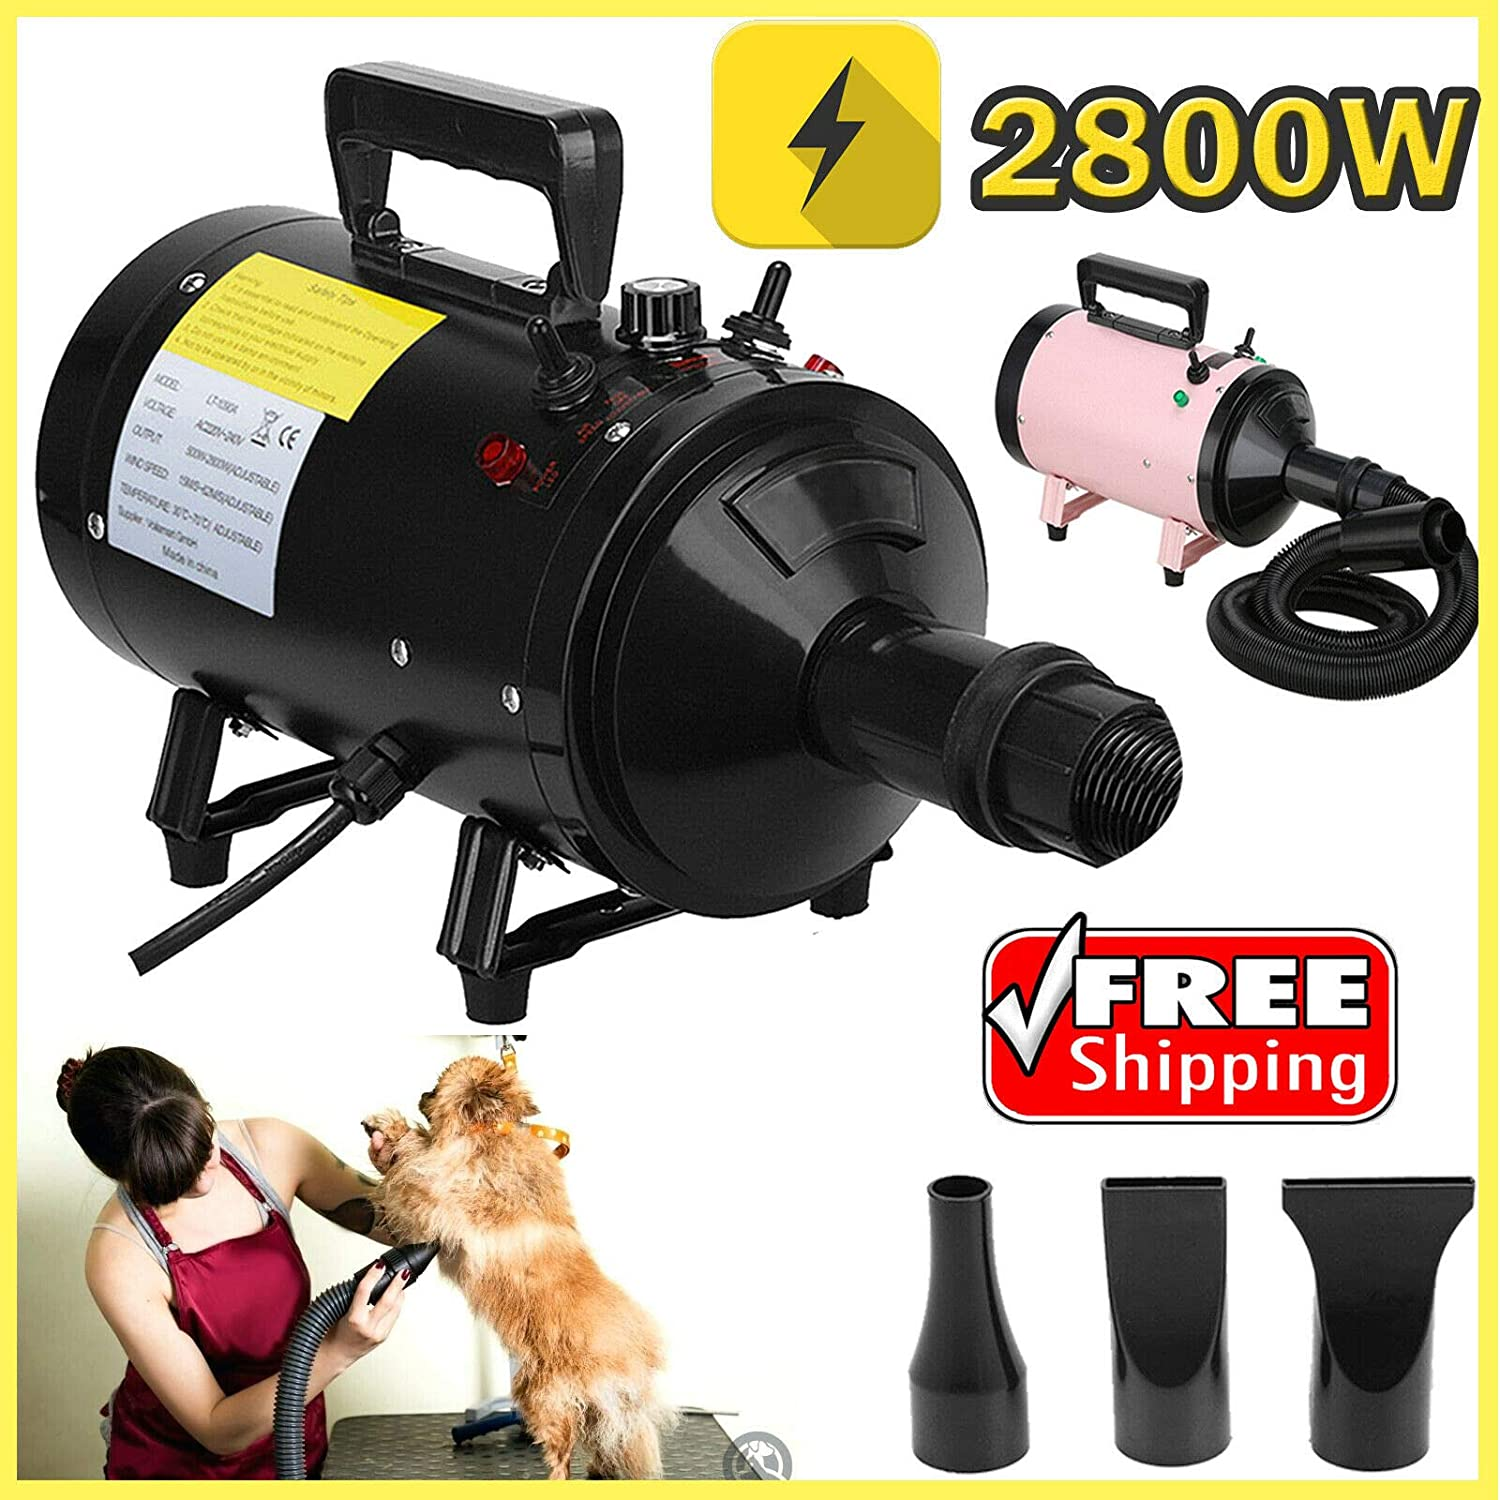 Black (stepless wind speed) 2800W Stepless Speed Pet Grooming Hair Dryer High Velocity Dog Cat Hairdryer Blower Blaster 2.5M Flexible Hose with 3 Nozzles Black